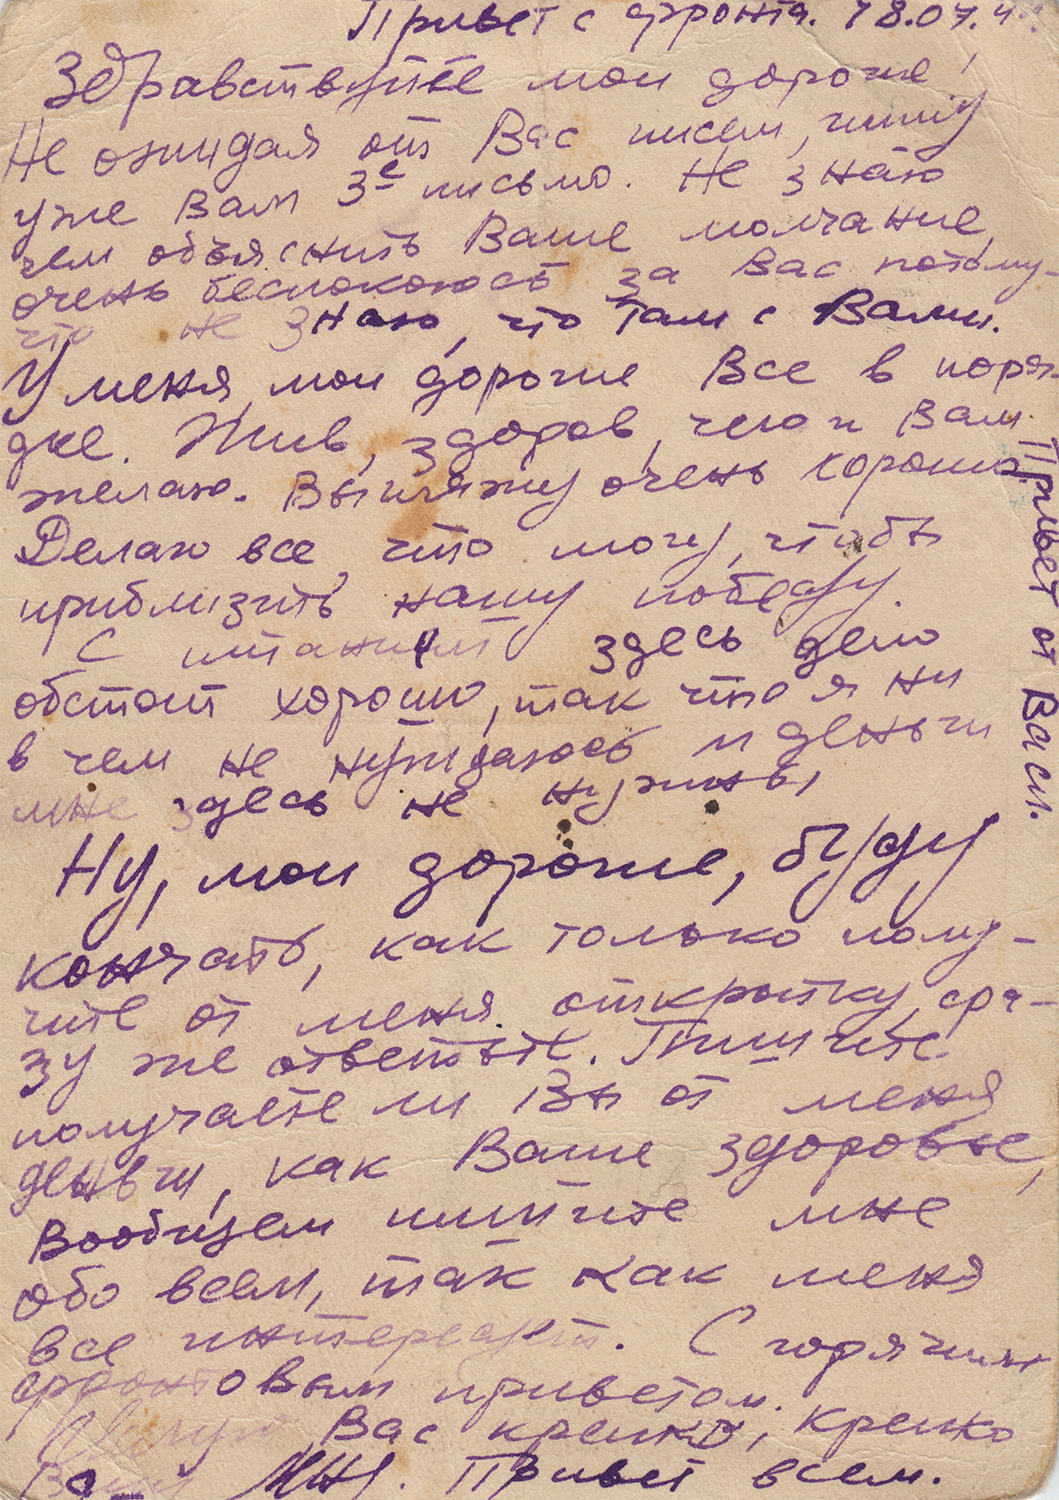 """Message on reverse side of a postcard that Yona sent from the front to his parents: """"April 18, 1944. Greetings from the front! Hello, my dears! Without waiting for your letters, I am writing you my third. I don't know how to explain your silence, and I am very worried about you because I don't know what is going on with you. I am doing well, my dears. I'm alive, healthy, and wish the same for you. I look very good. I'm doing all I can to make our Victory come sooner. Our situation with food is good here, so I don't need anything, and I don't need money here. Well, my dears, I will finish here, and as soon as you receive this postcard, write me back. Let me know if you got the money I sent you, and let me know about your health. In short, write me about everything, because I'm interested in everything. With warm greetings from the front. Many kisses. Say hi to everyone. Yours, Lenya."""""""